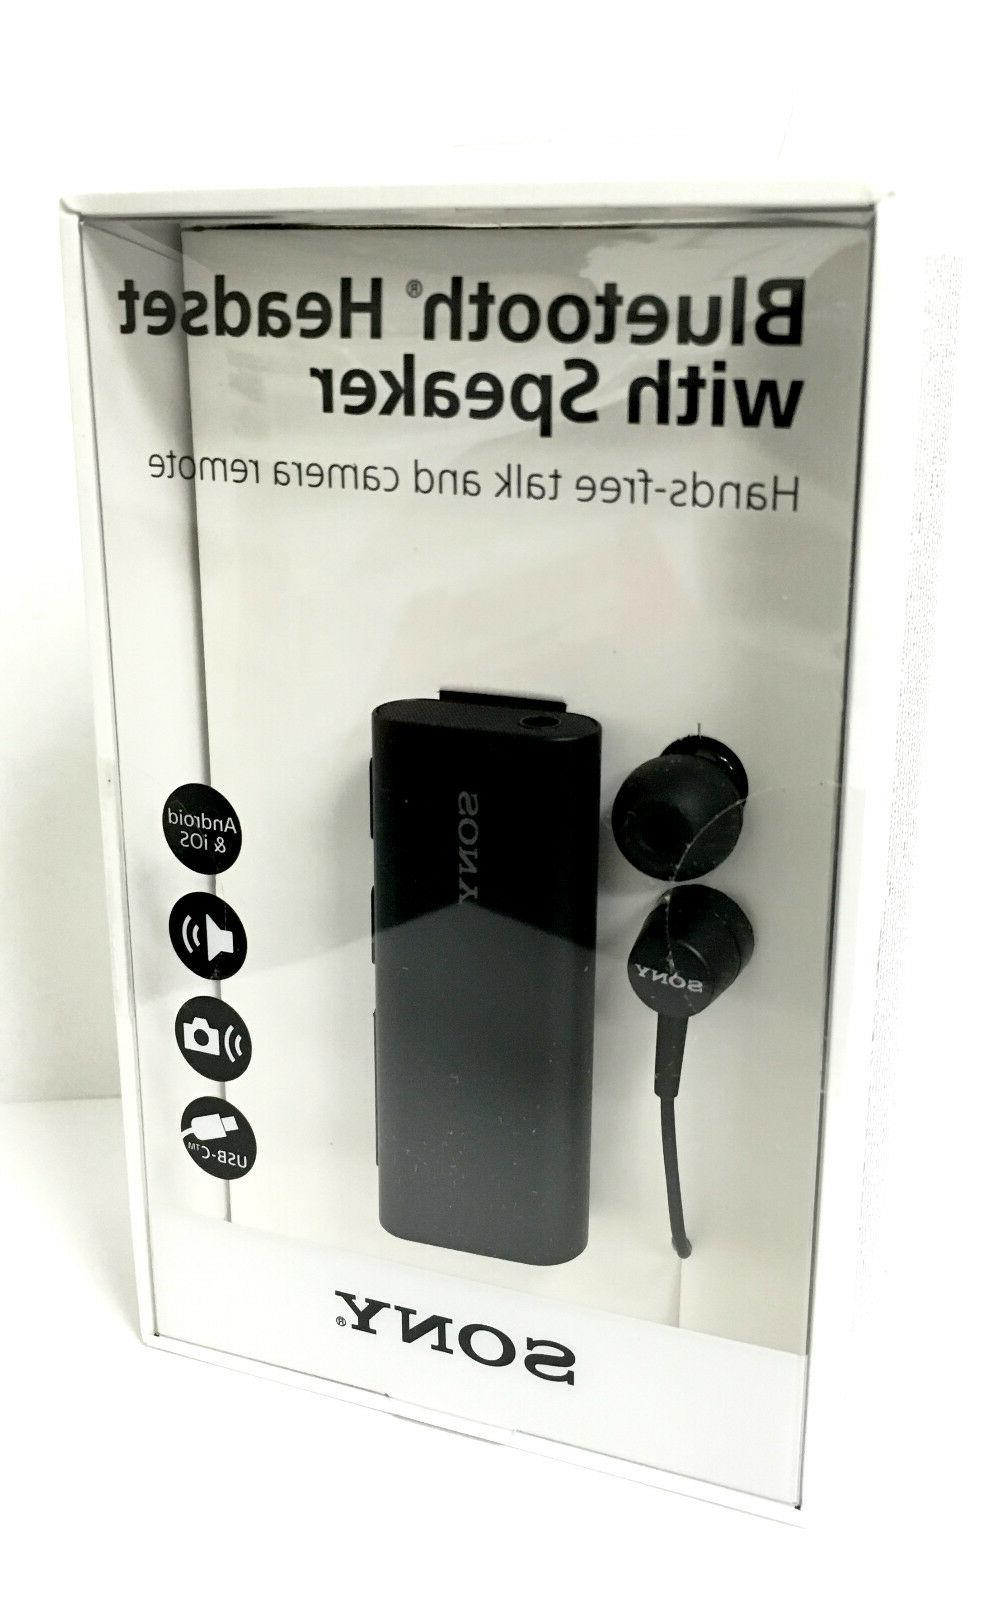 Sony Sbh56 Bluetooth Nfc One Touch Headset